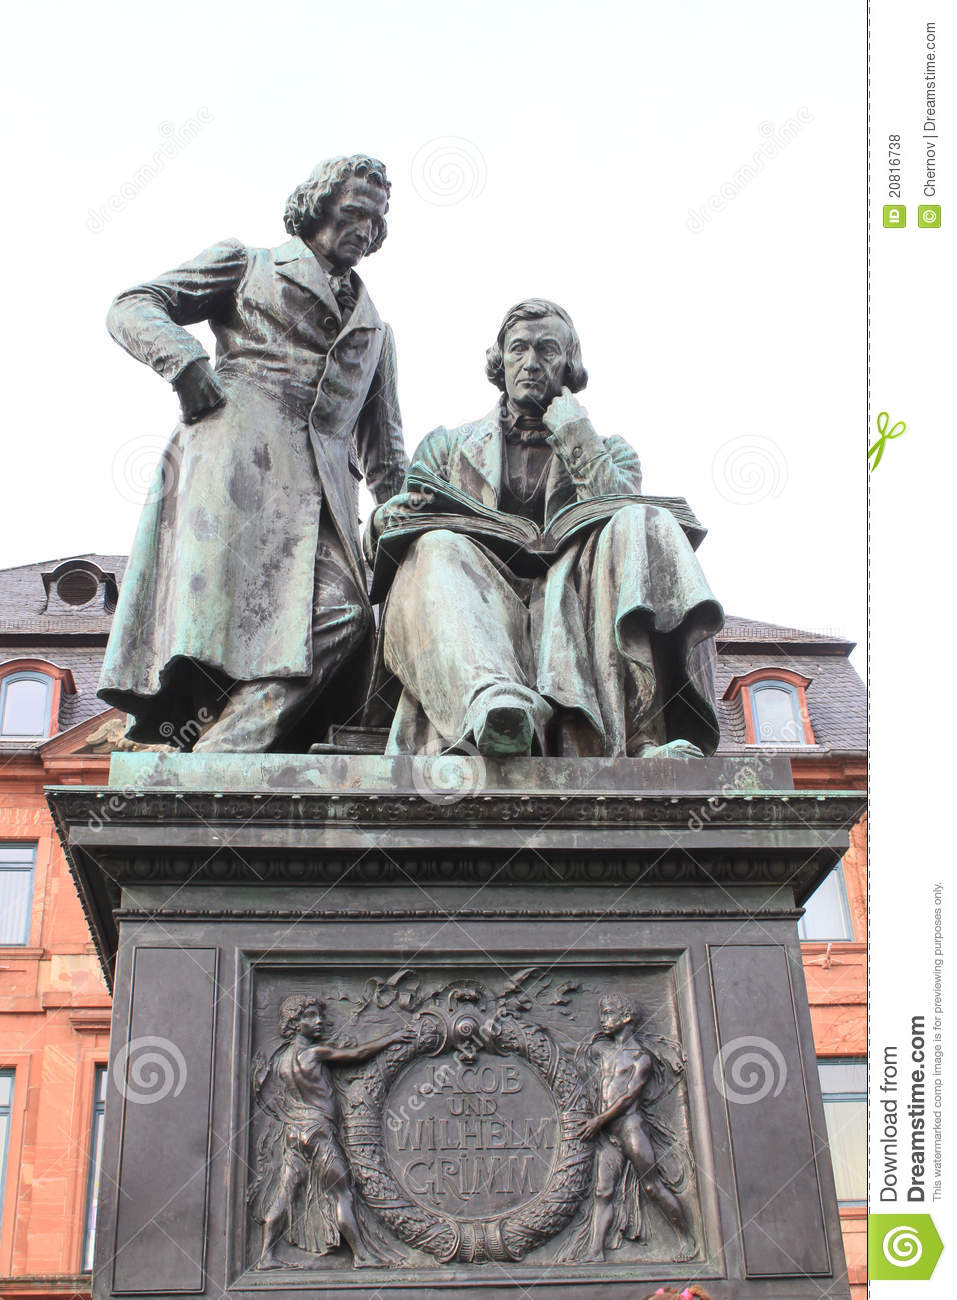 Monument to the brothers Grimm in Hanau, Germany.